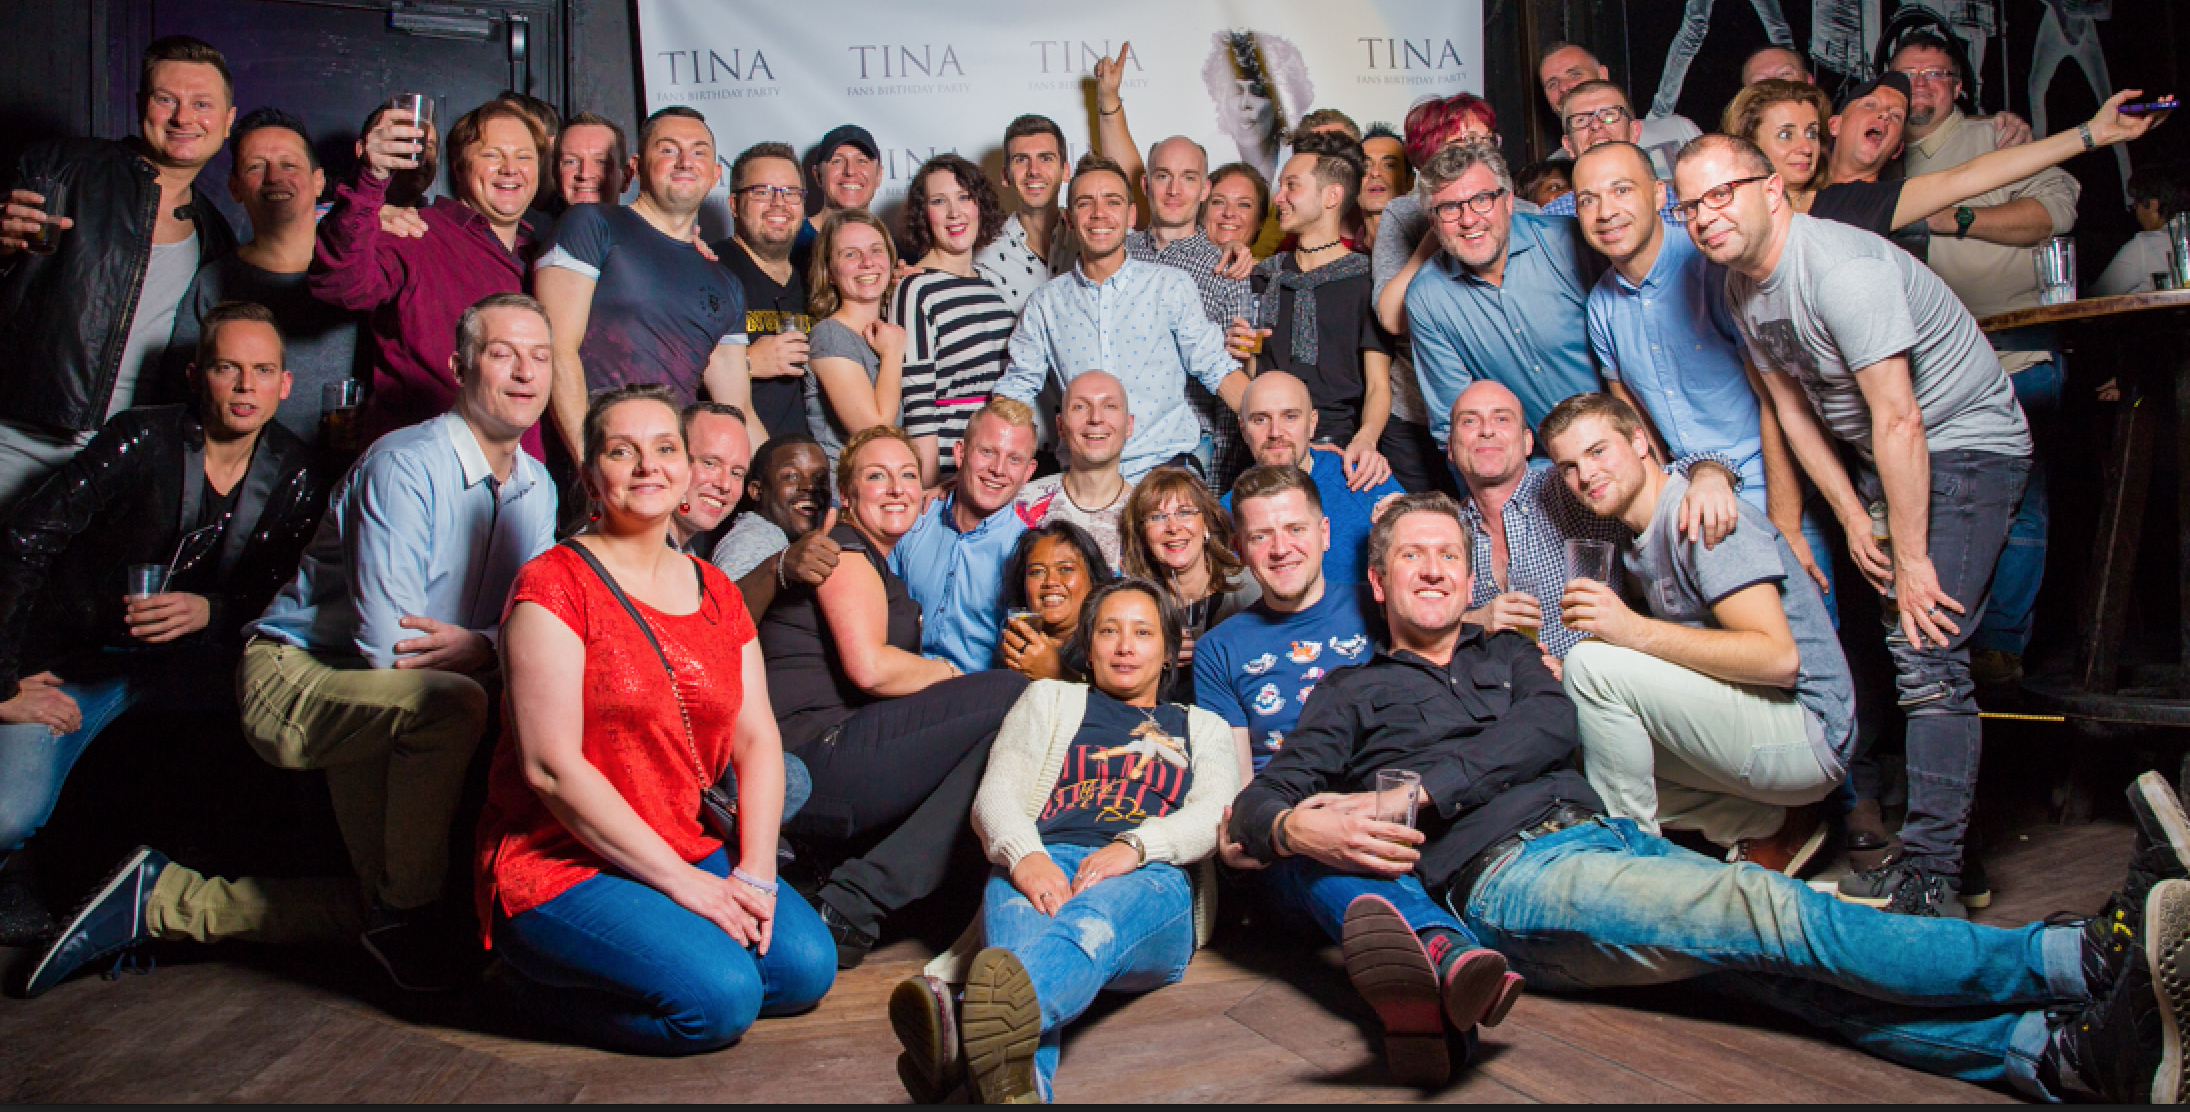 Tina Turner Fan Birthday Party - TINA 77 - Amsterdam 2016 Group photo